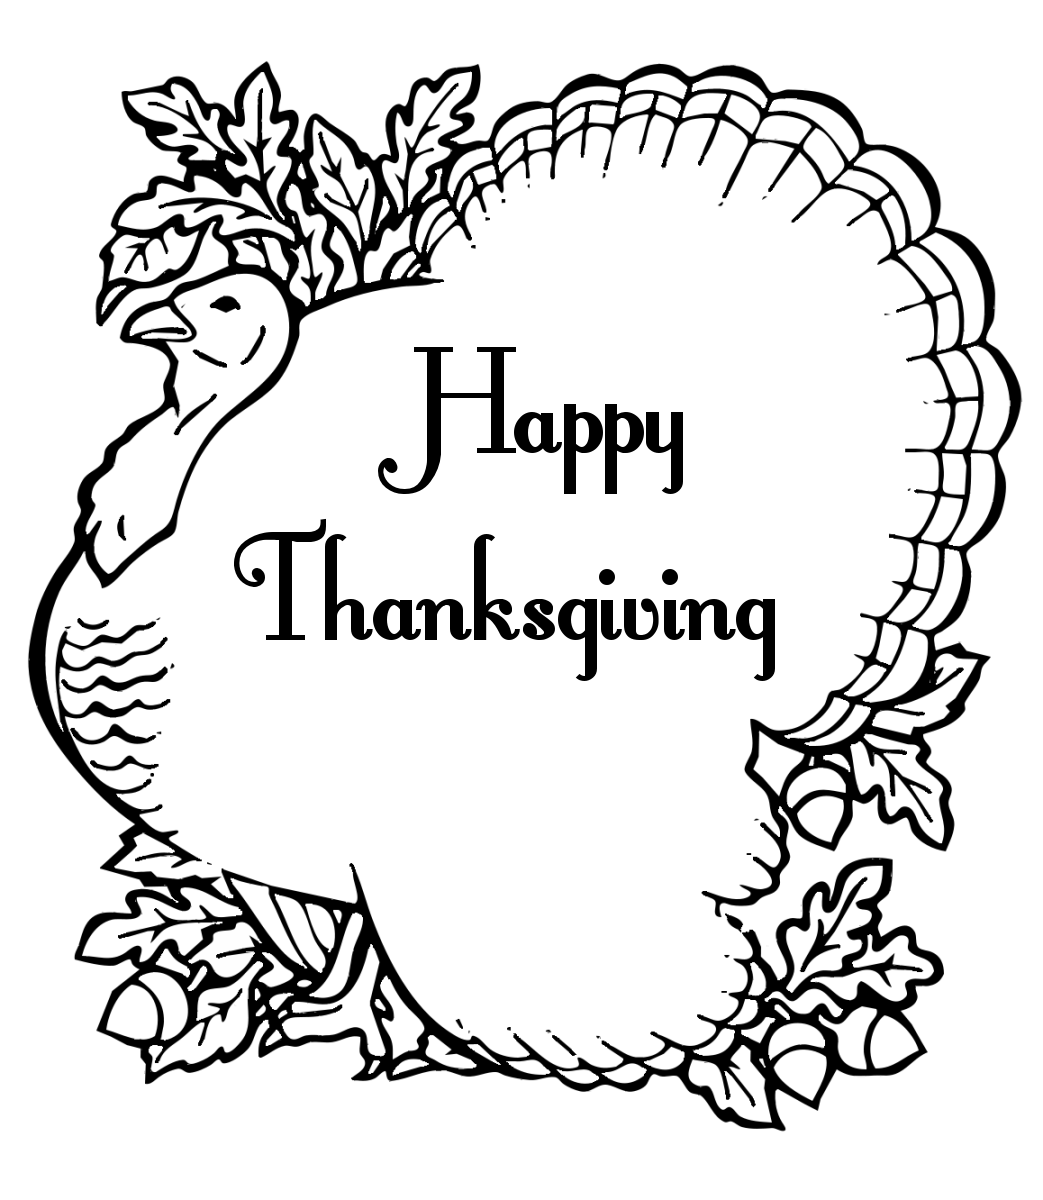 thansgiving printible coloring pages - photo#11